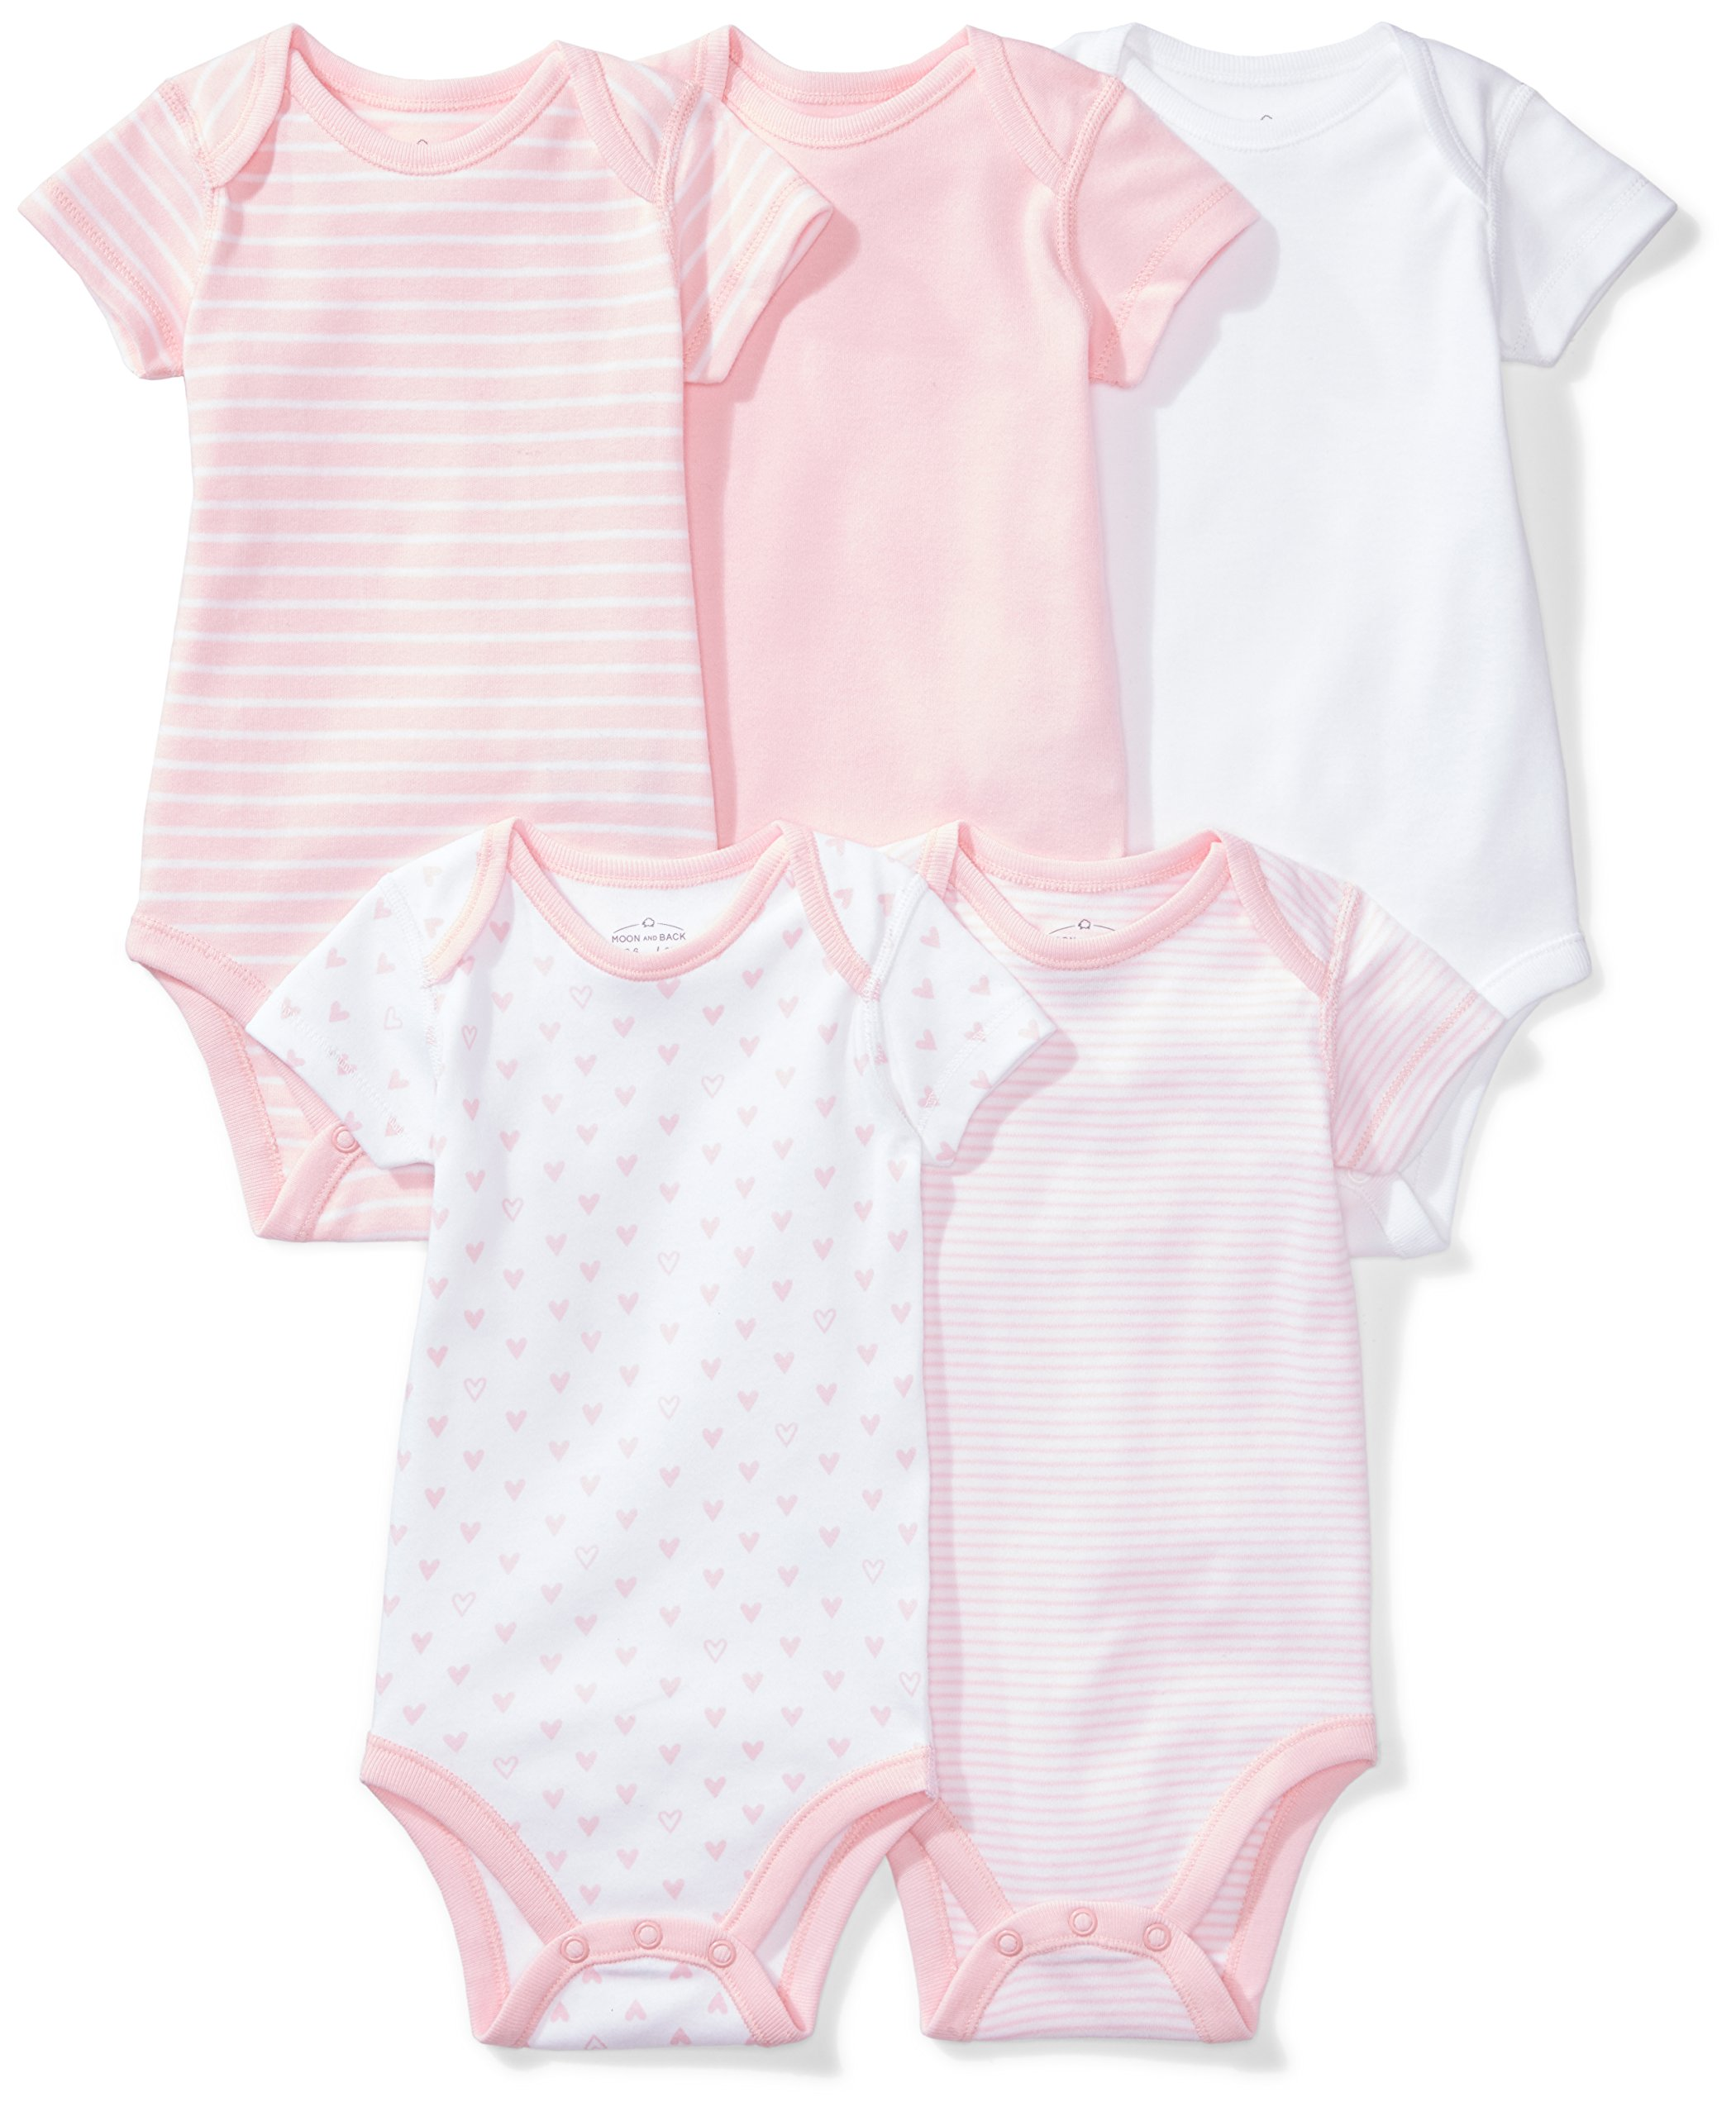 Moon and Back Baby Set of 5 Organic Short-Sleeve Bodysuits, Pink Blush, 3-6 Months